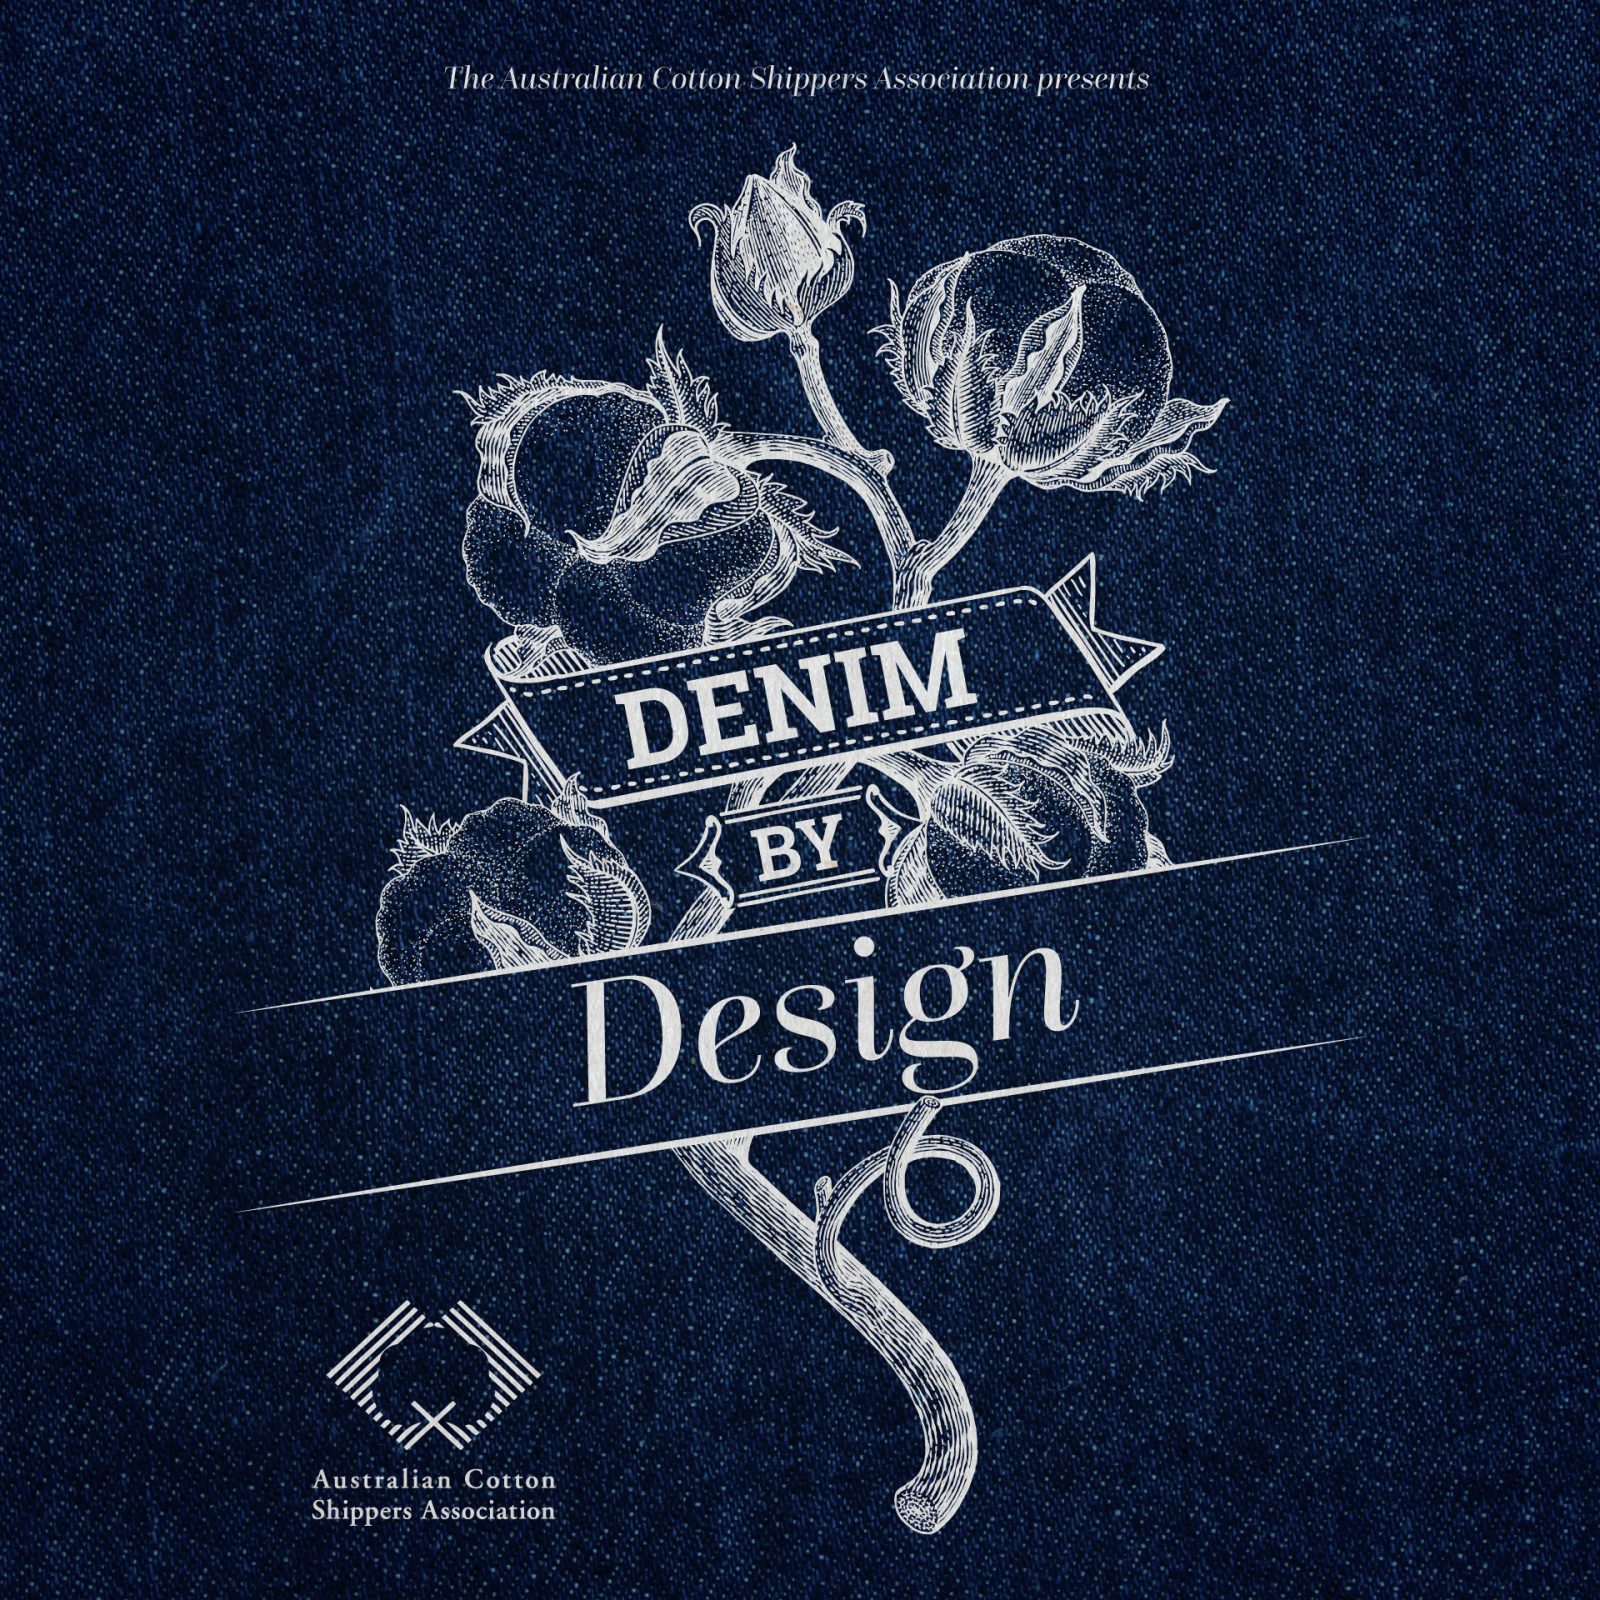 Australian Cotton Shippers Association presents Denim by Design Fashion Event